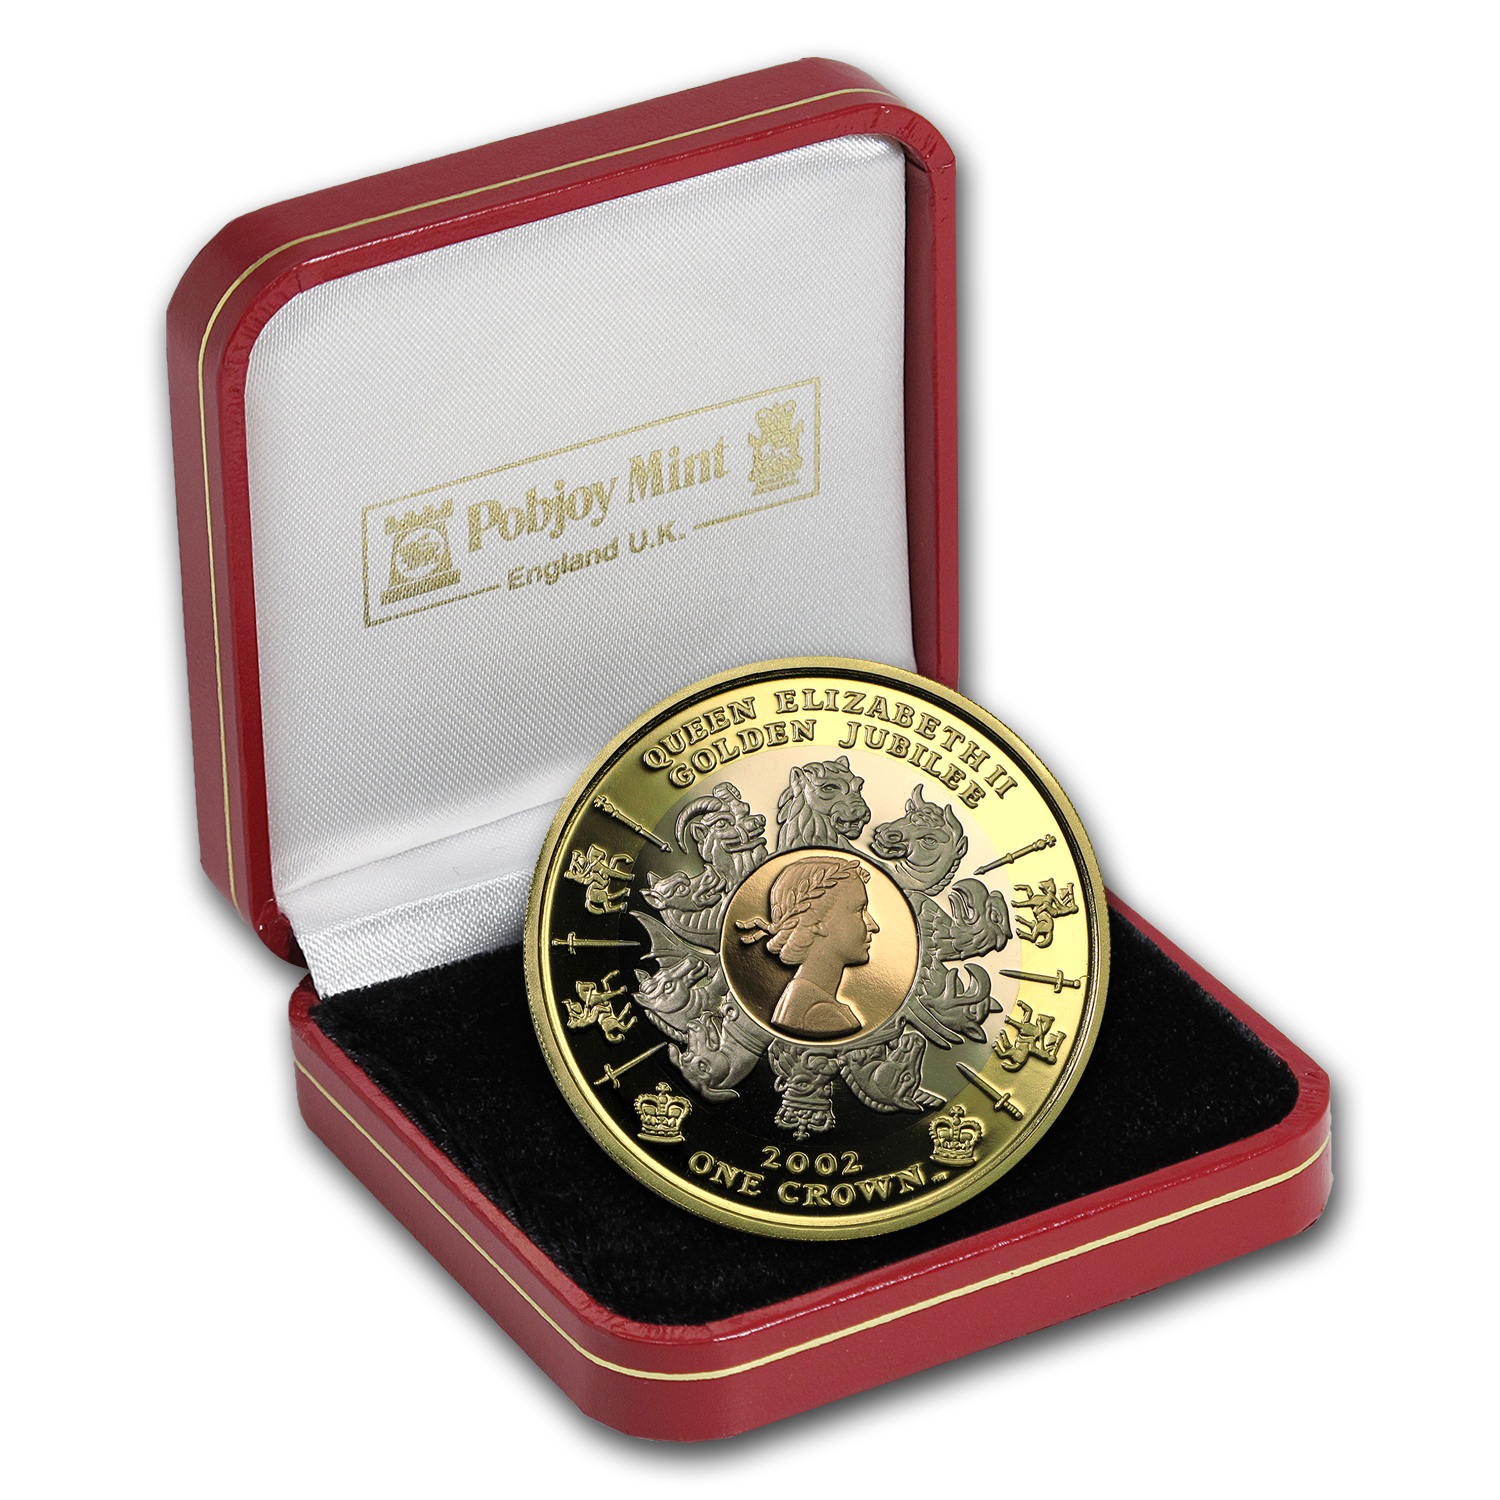 2002 Isle of Man 1 oz Proof Gold Crown Golden Jubilee Tri Color